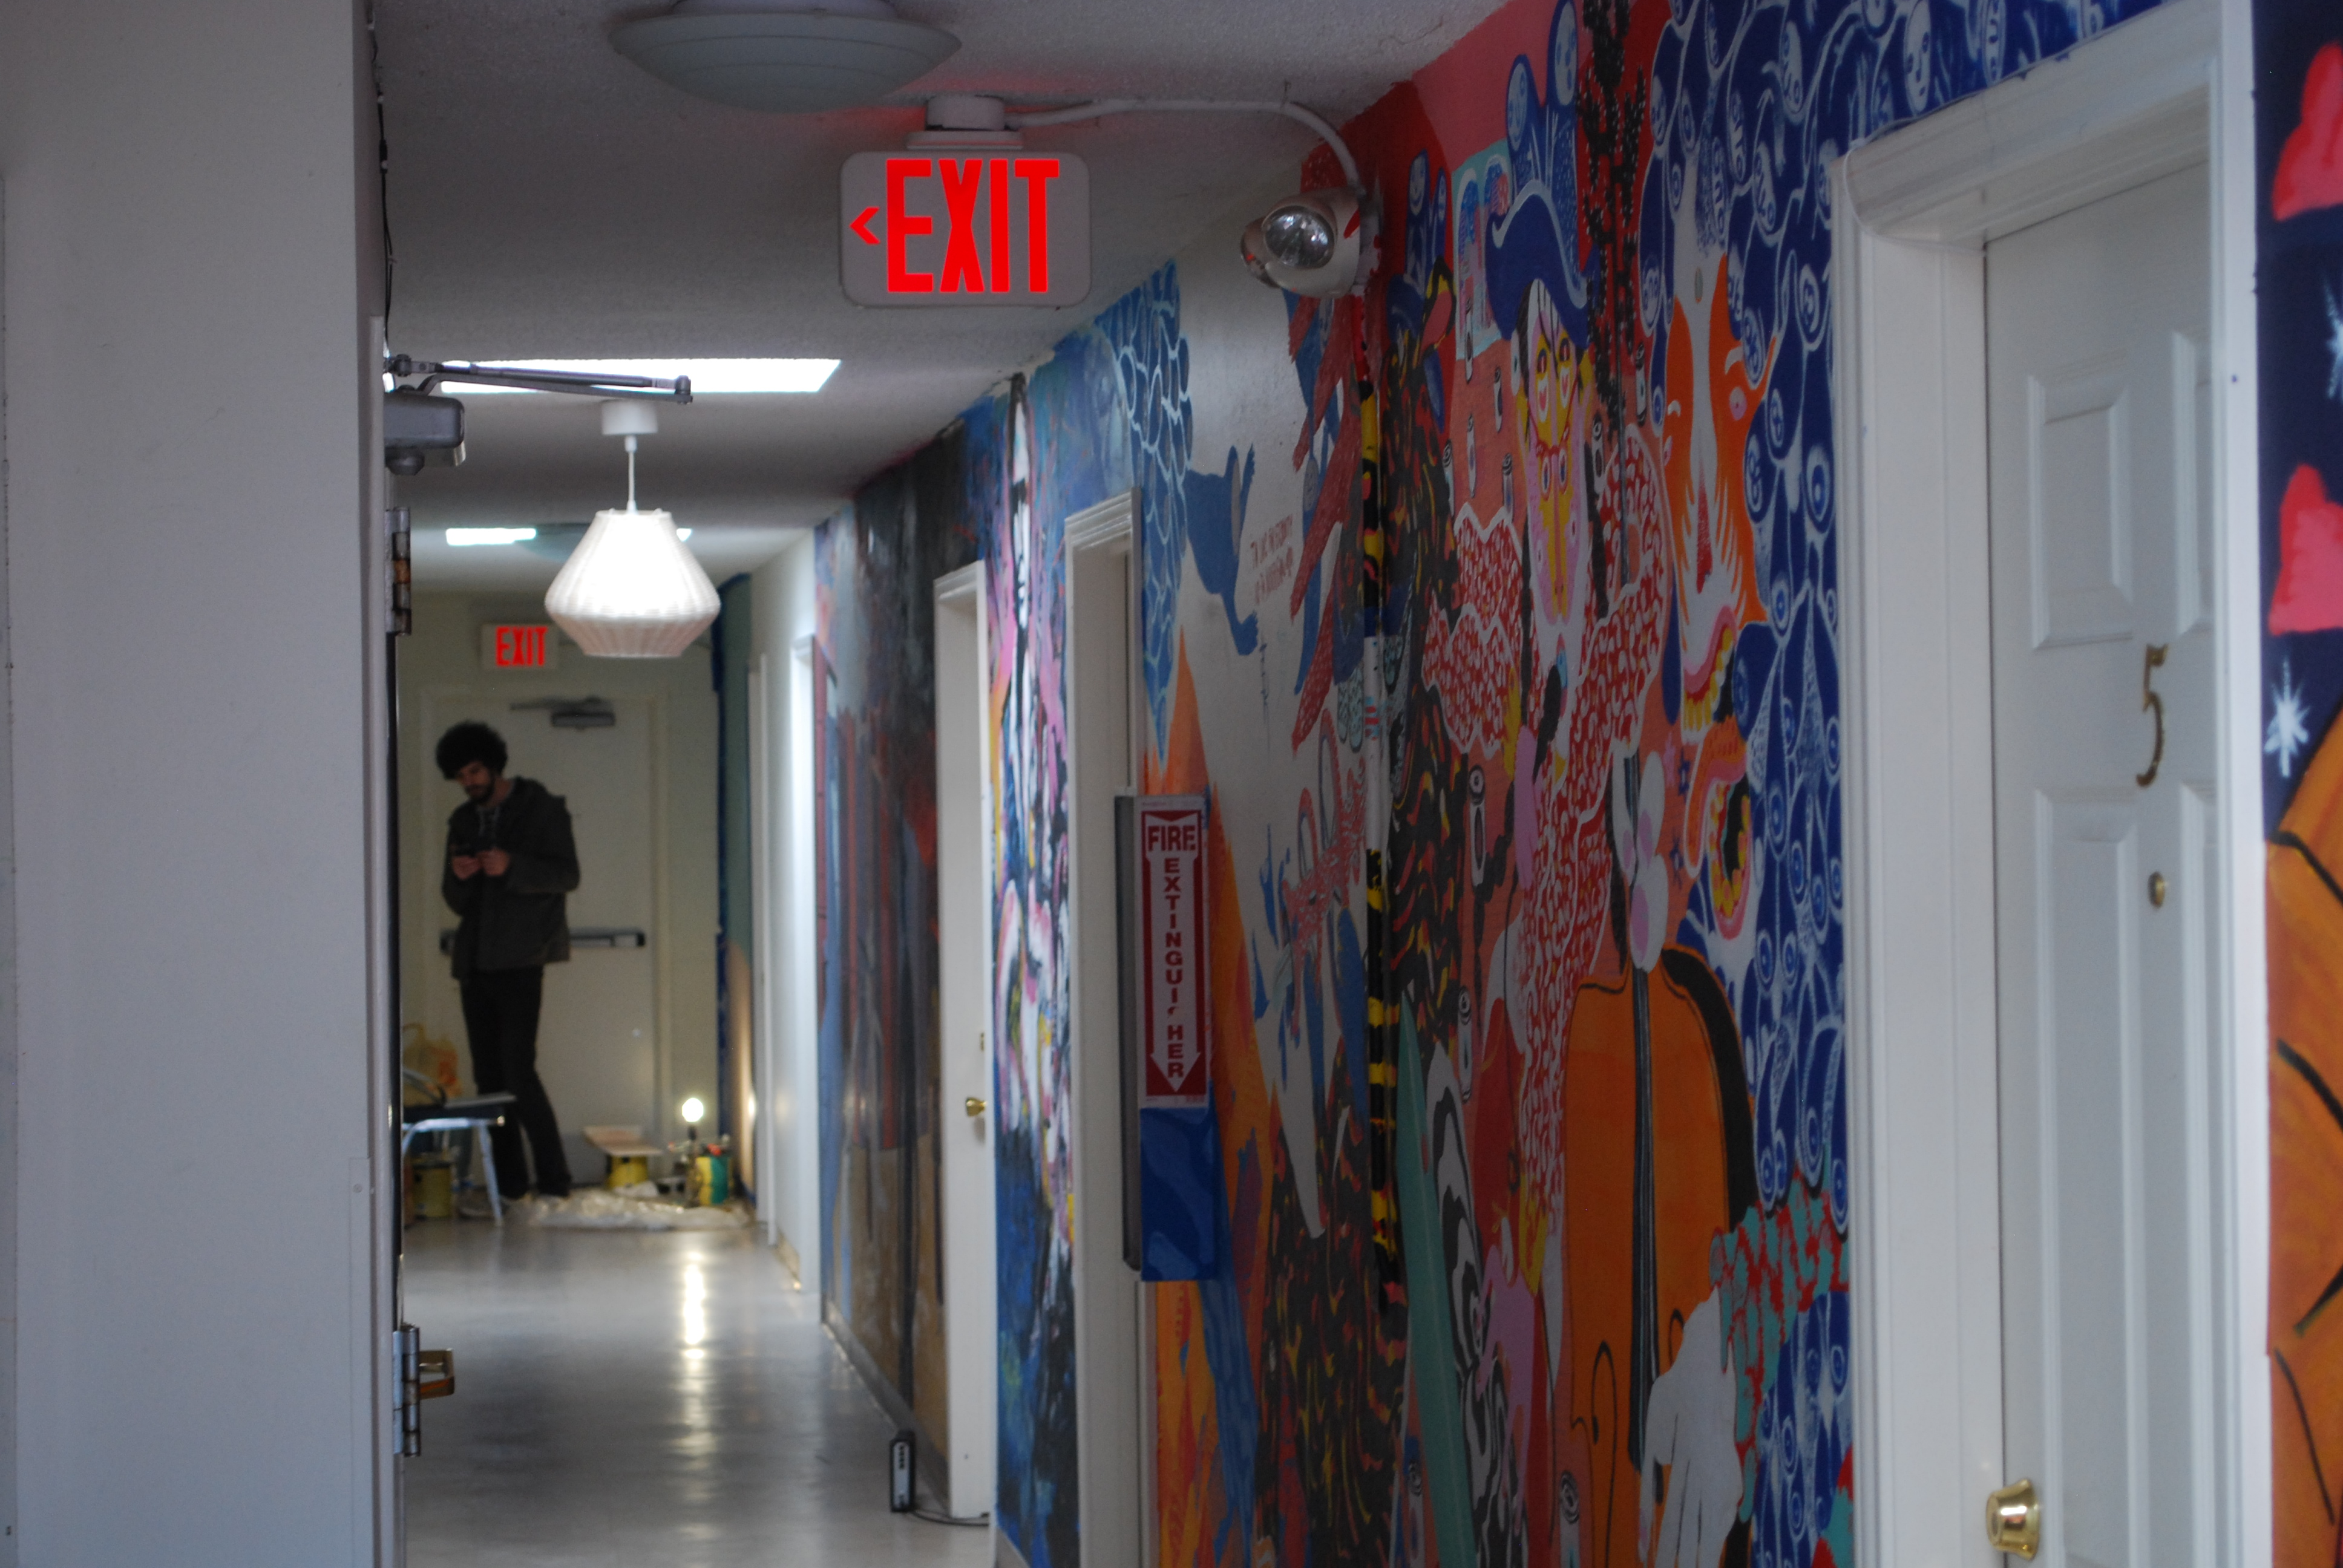 Artist Stephen Ferguson stands at the end of the hall painting a mural of a cowboy riding a giant snake, a design that fits the western theme at Drifter Jack's Hostel. By Kaine Korzekwa